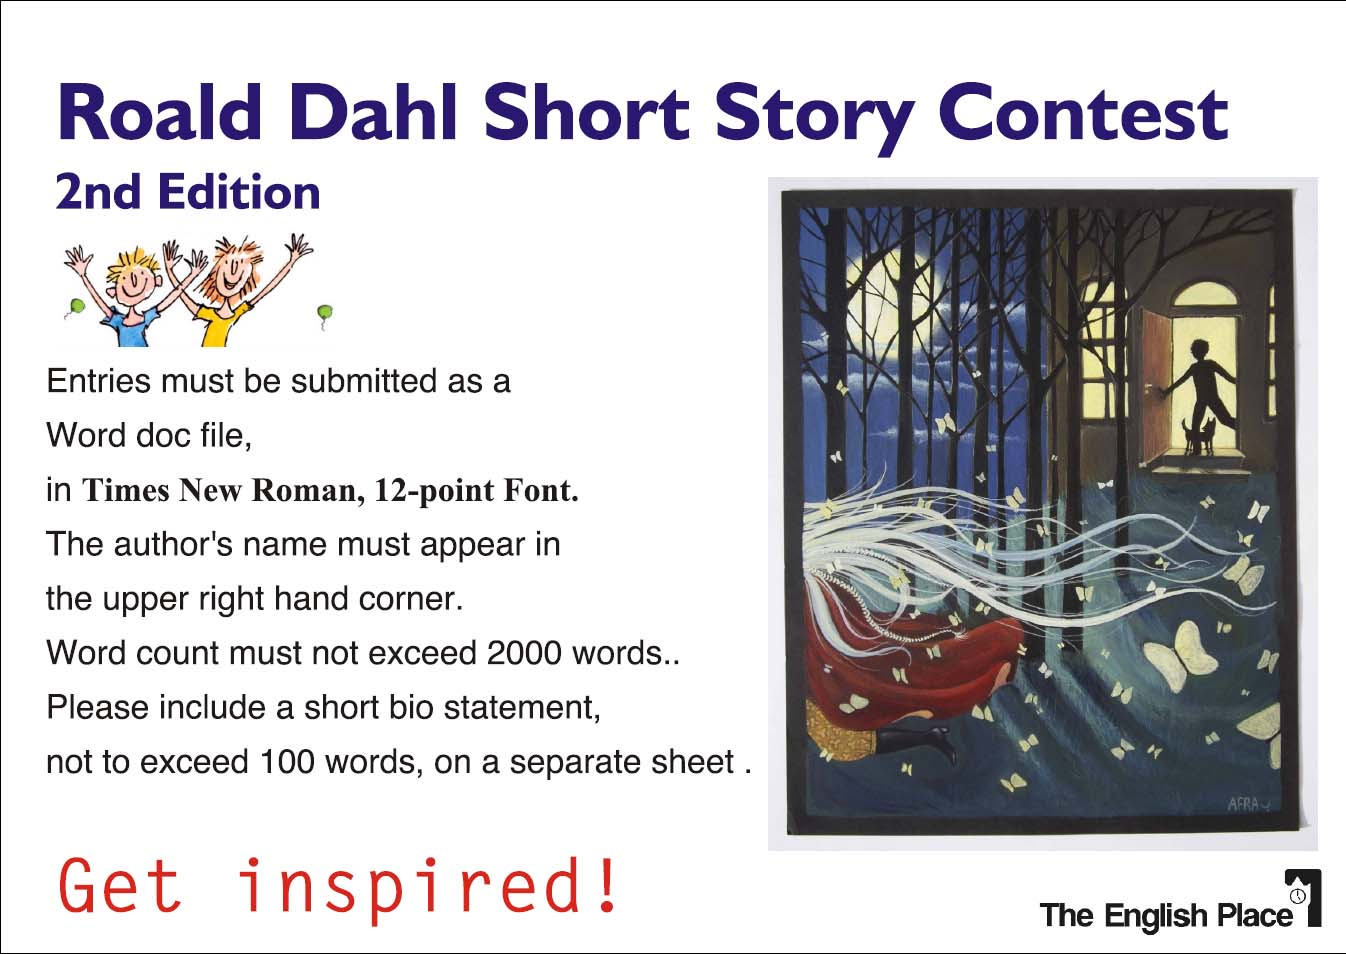 roald dahl short Short stories this is a list of all the short stories that roald dahl wrote they are listed alphabetically and link to pages of information you can also see a timeline of these stories arranged chronologically please send through any questions, comments, and corrections.